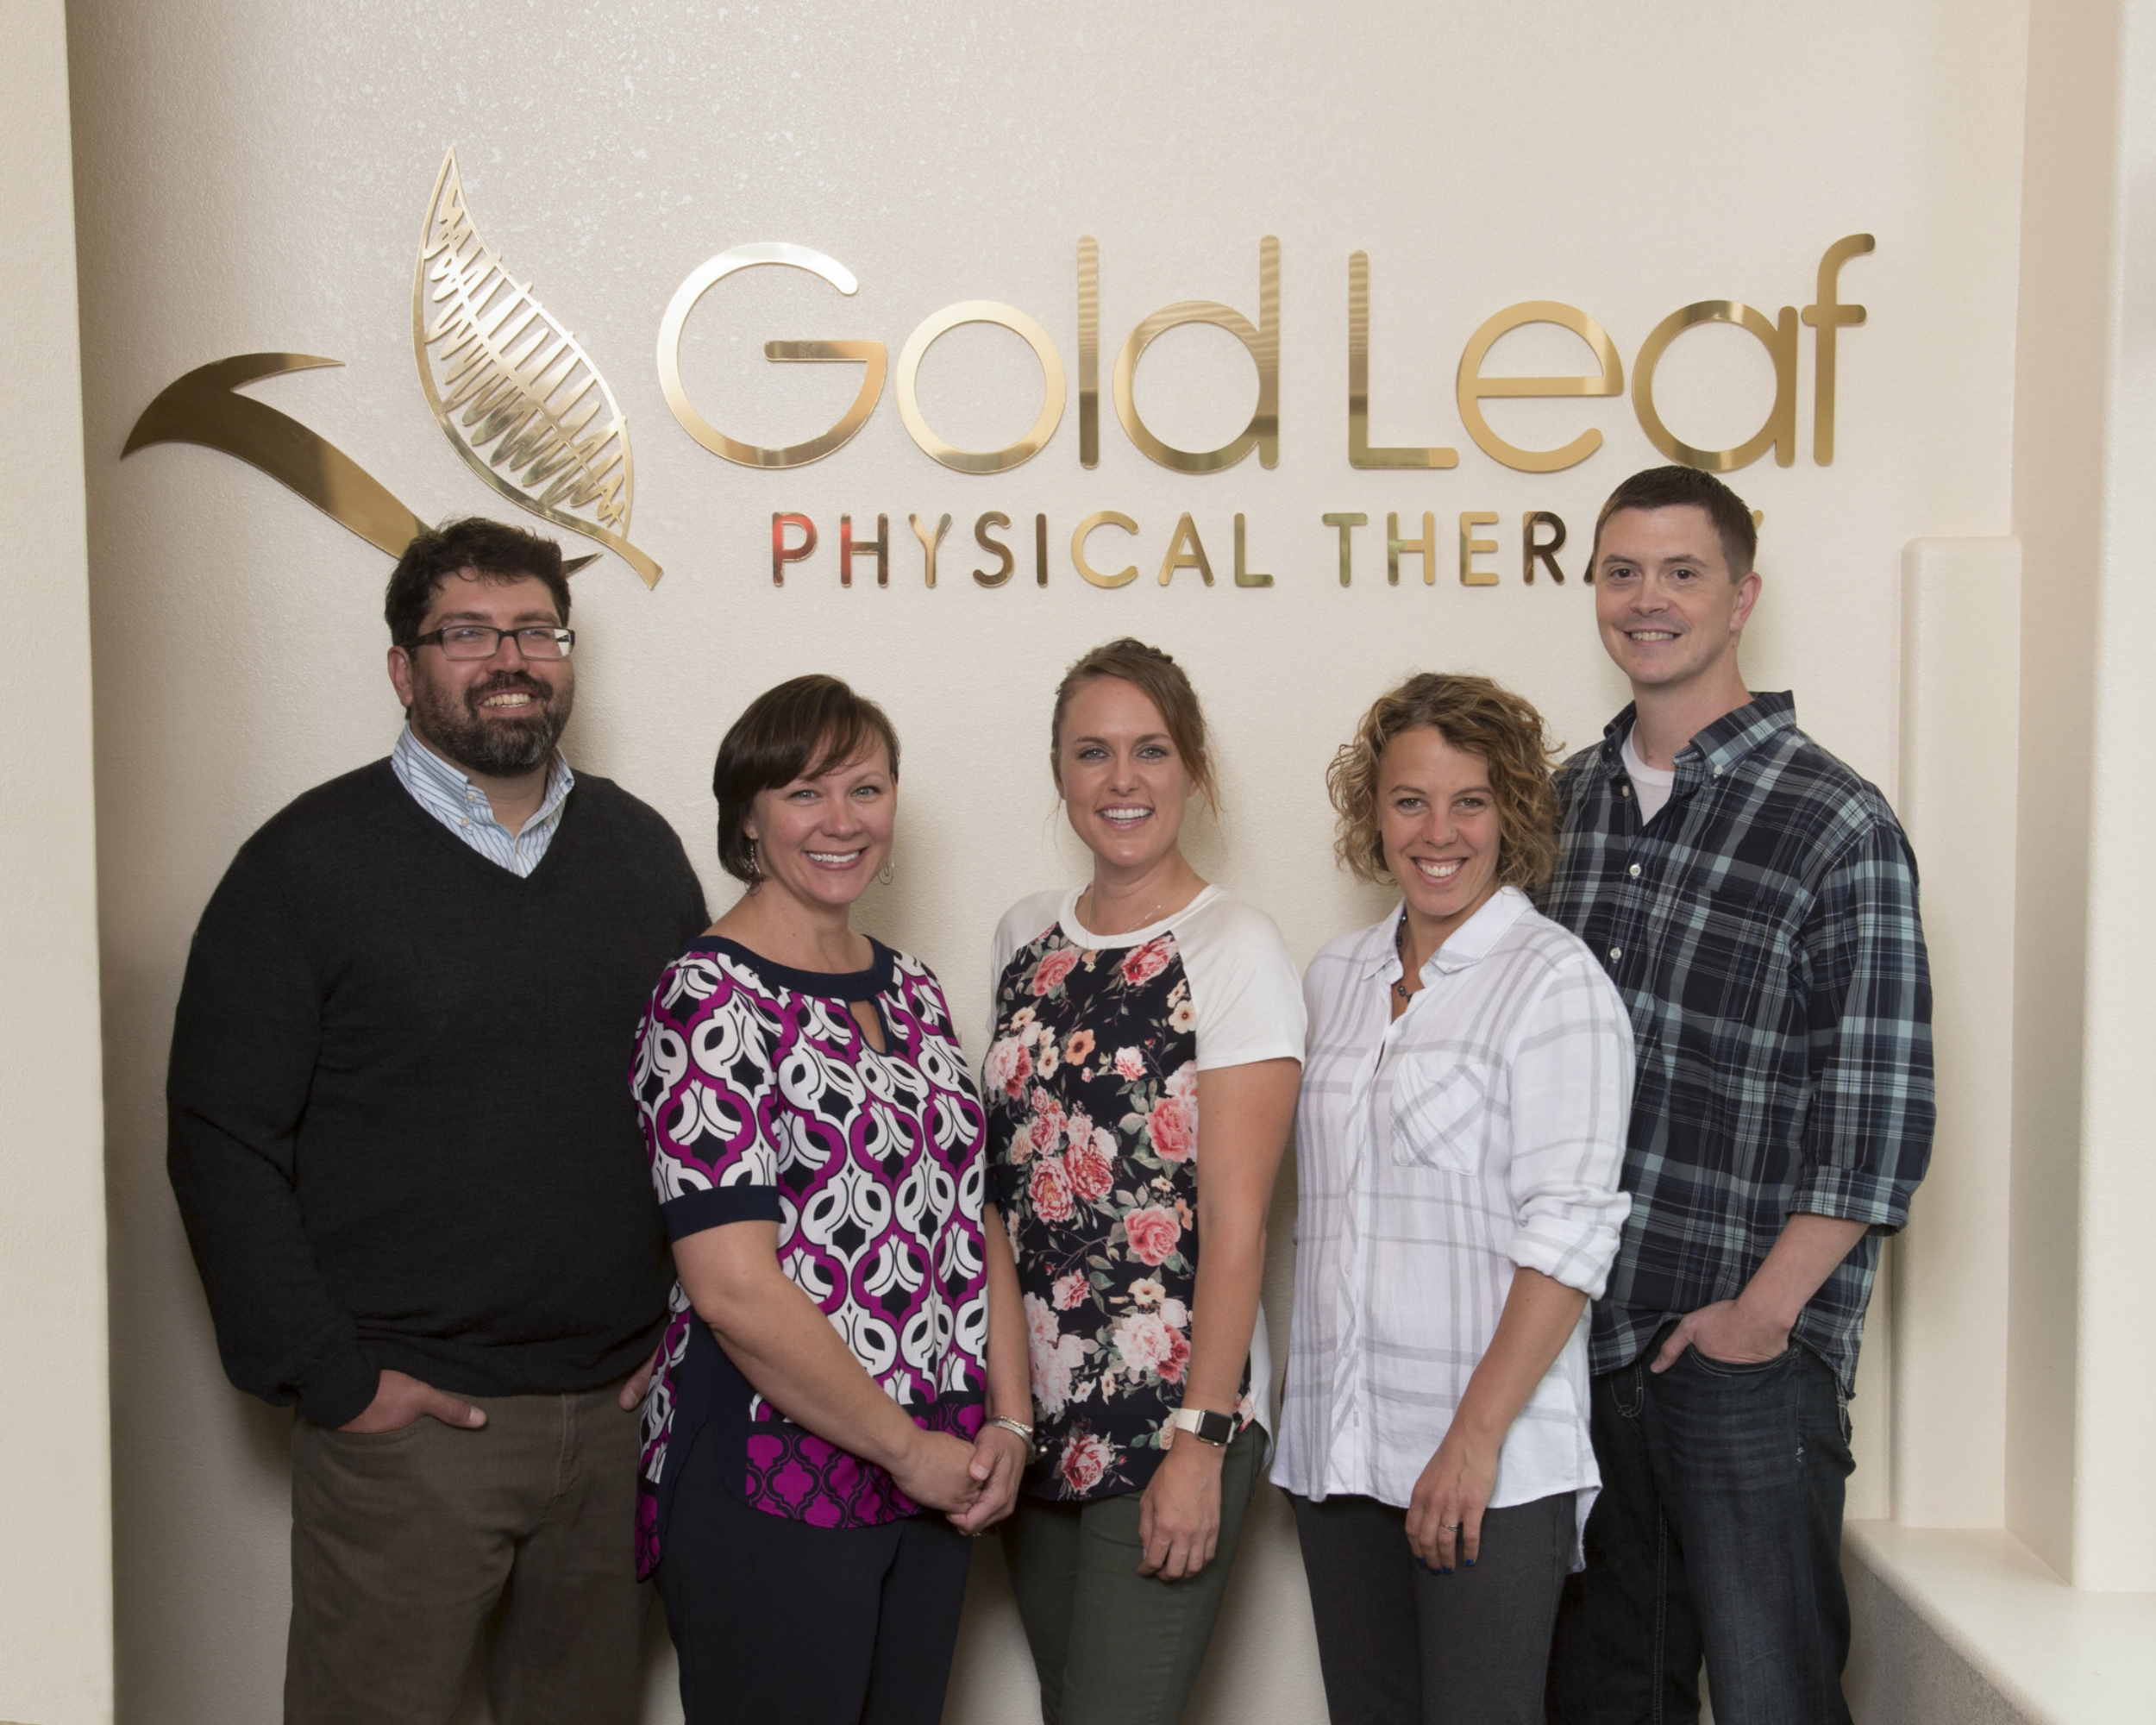 Meet the Gold Leaf Team, Physical Therapists in Helena, Monana